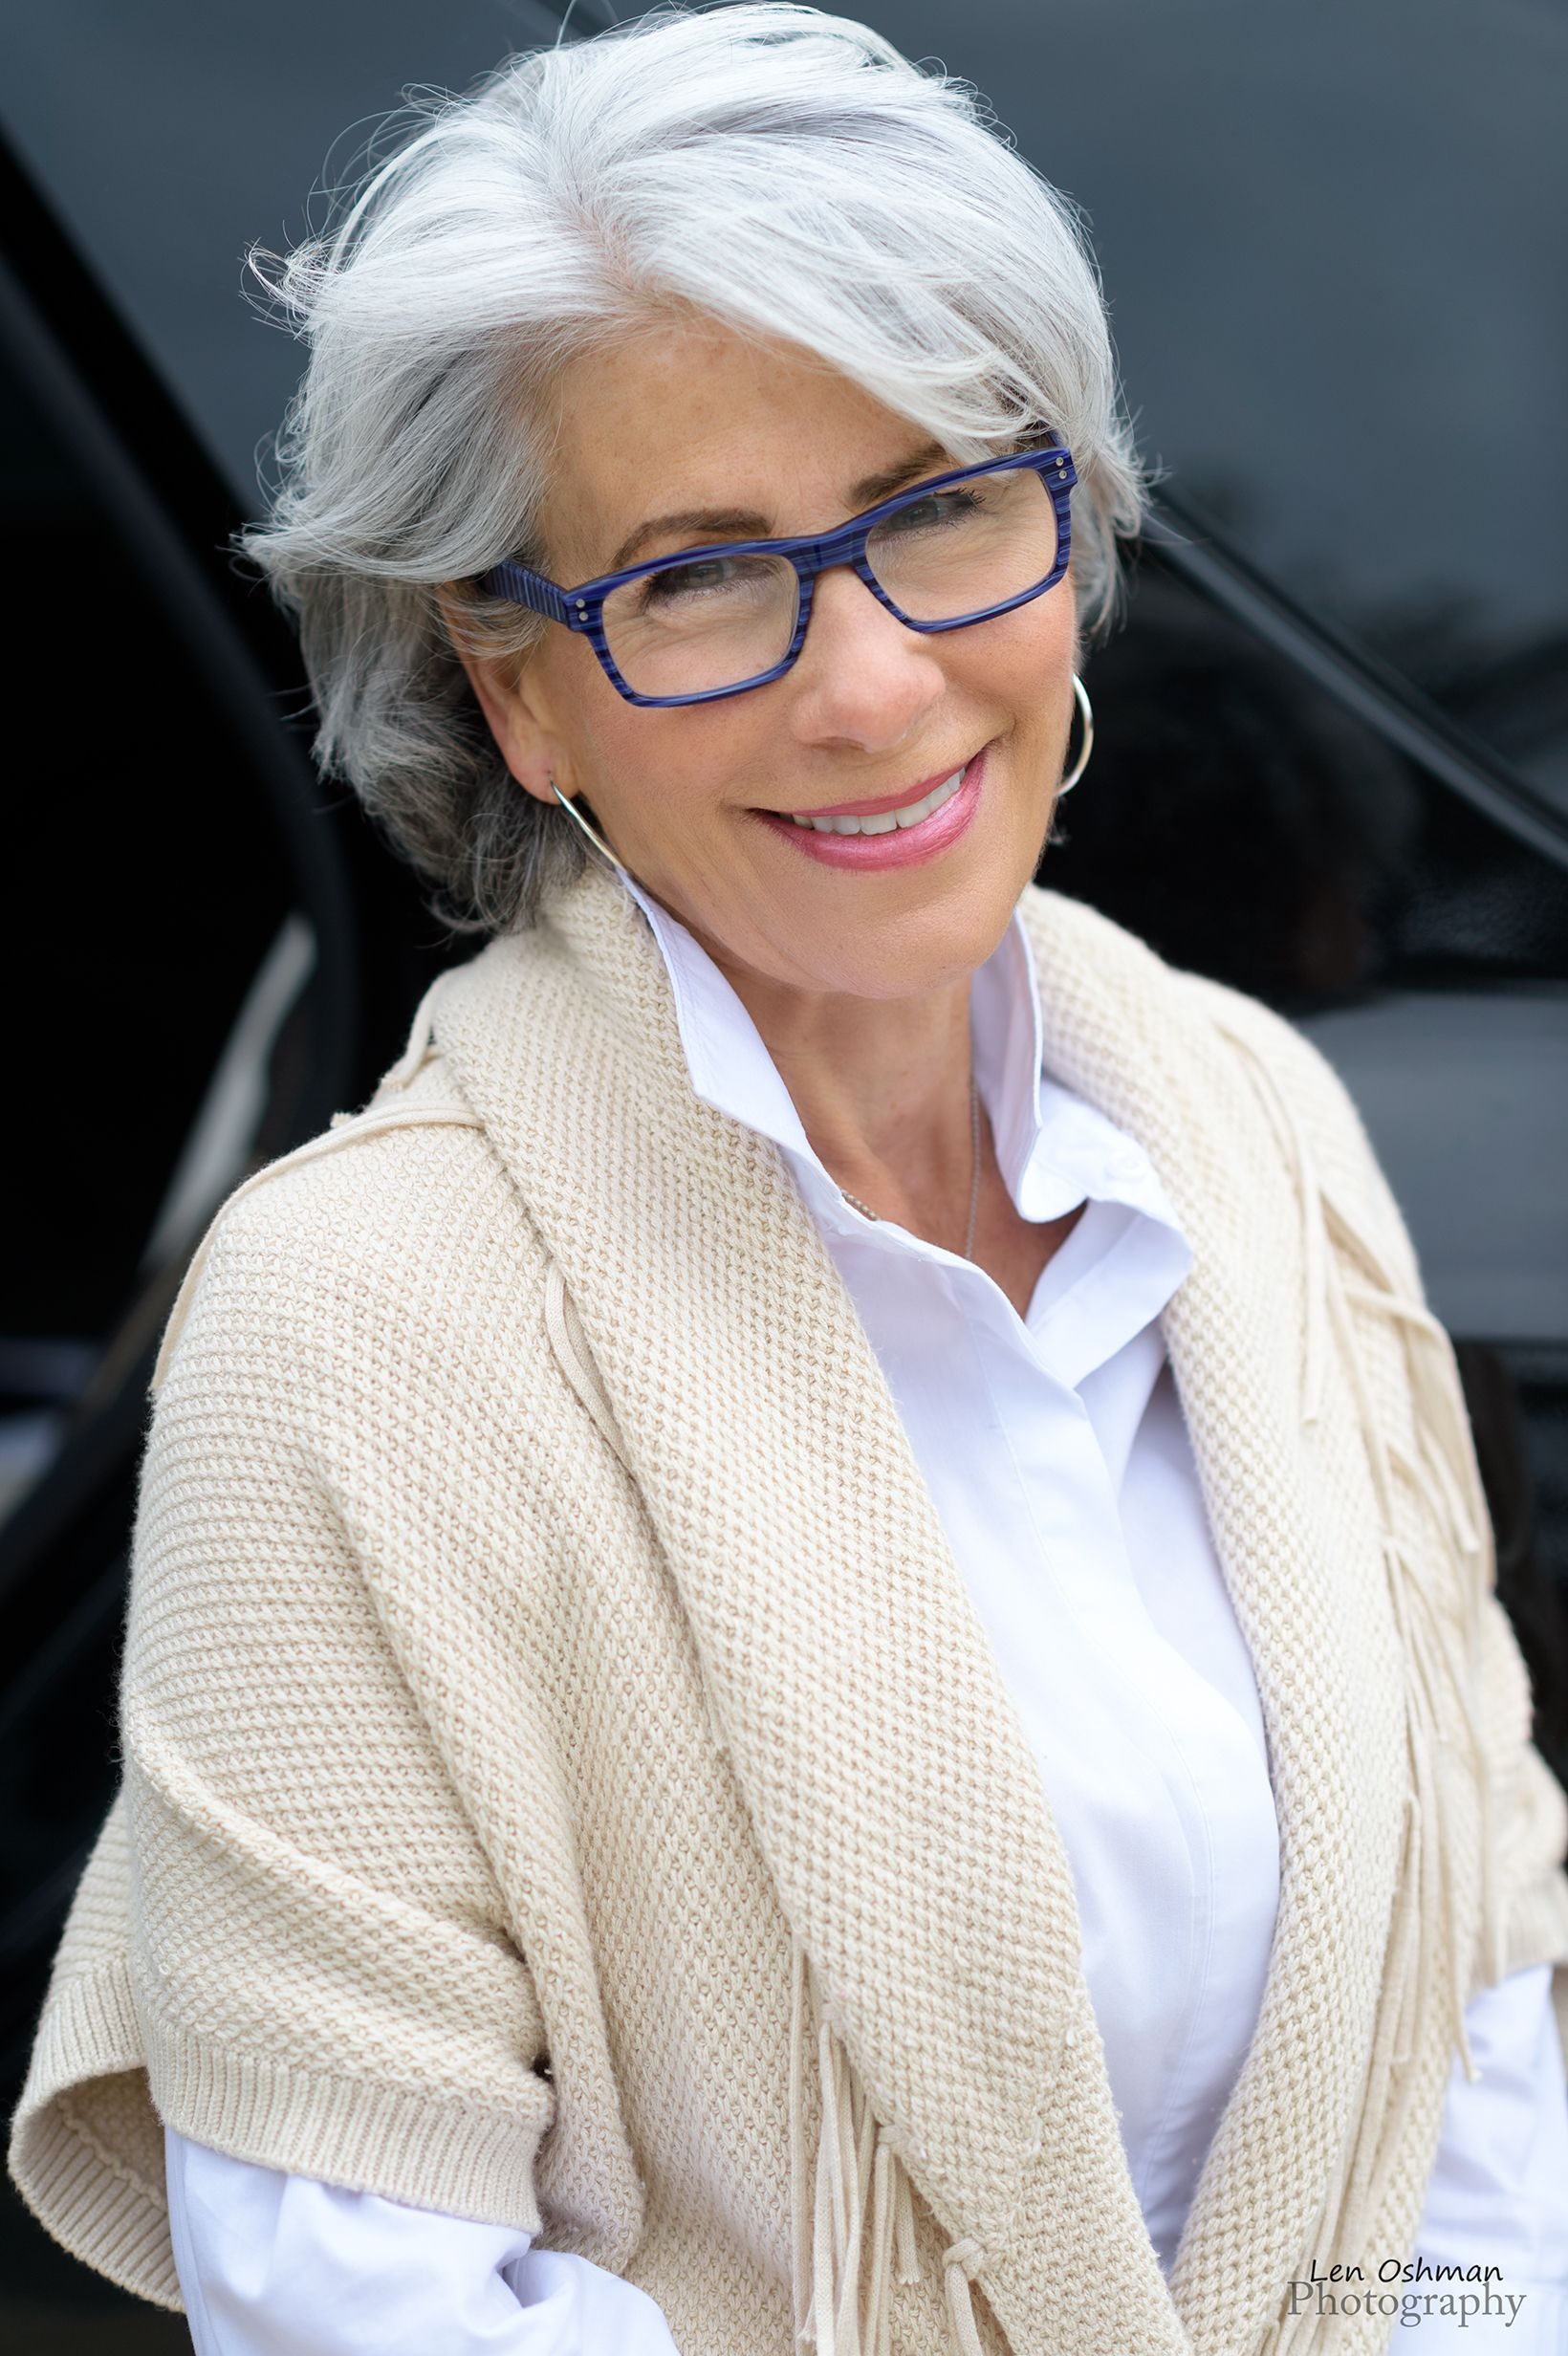 30++ Haircuts for older women with grey hair ideas